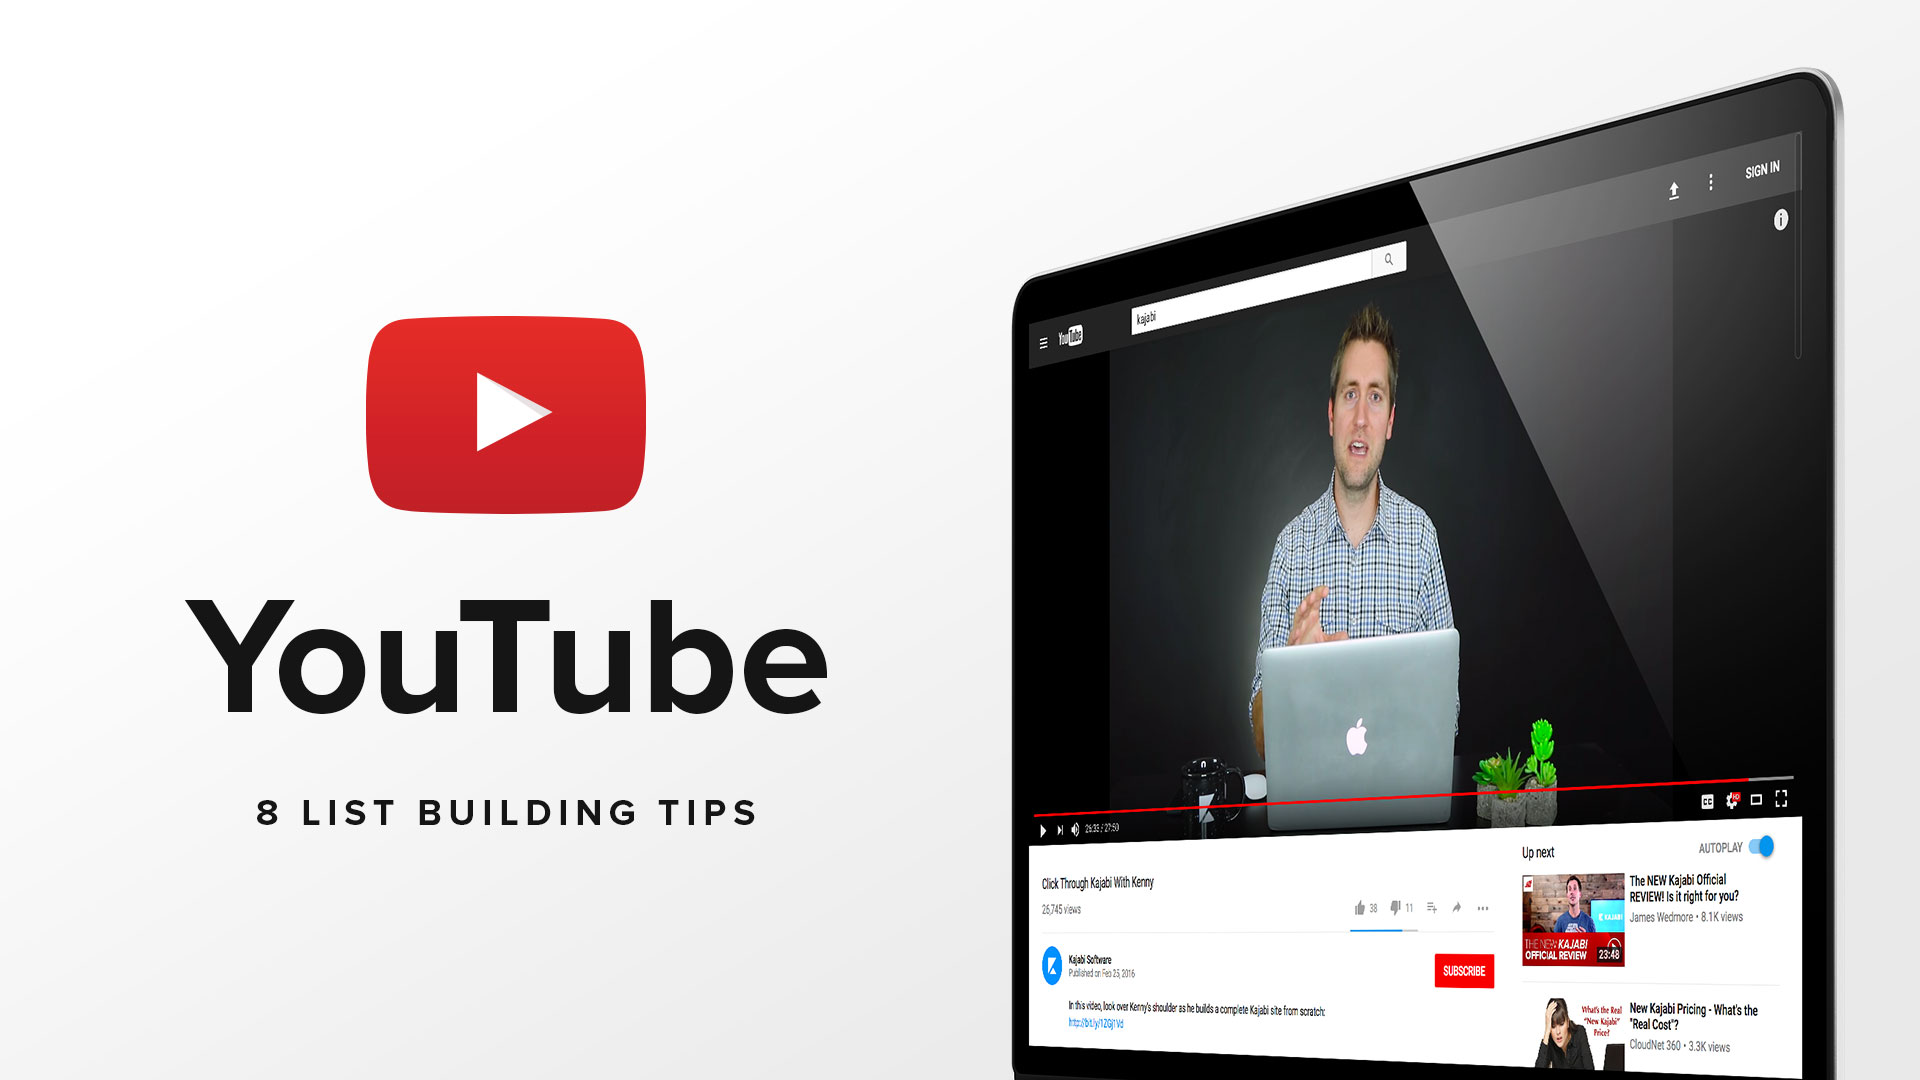 How To Grow Your Email List With YouTube In 8 Easy Steps